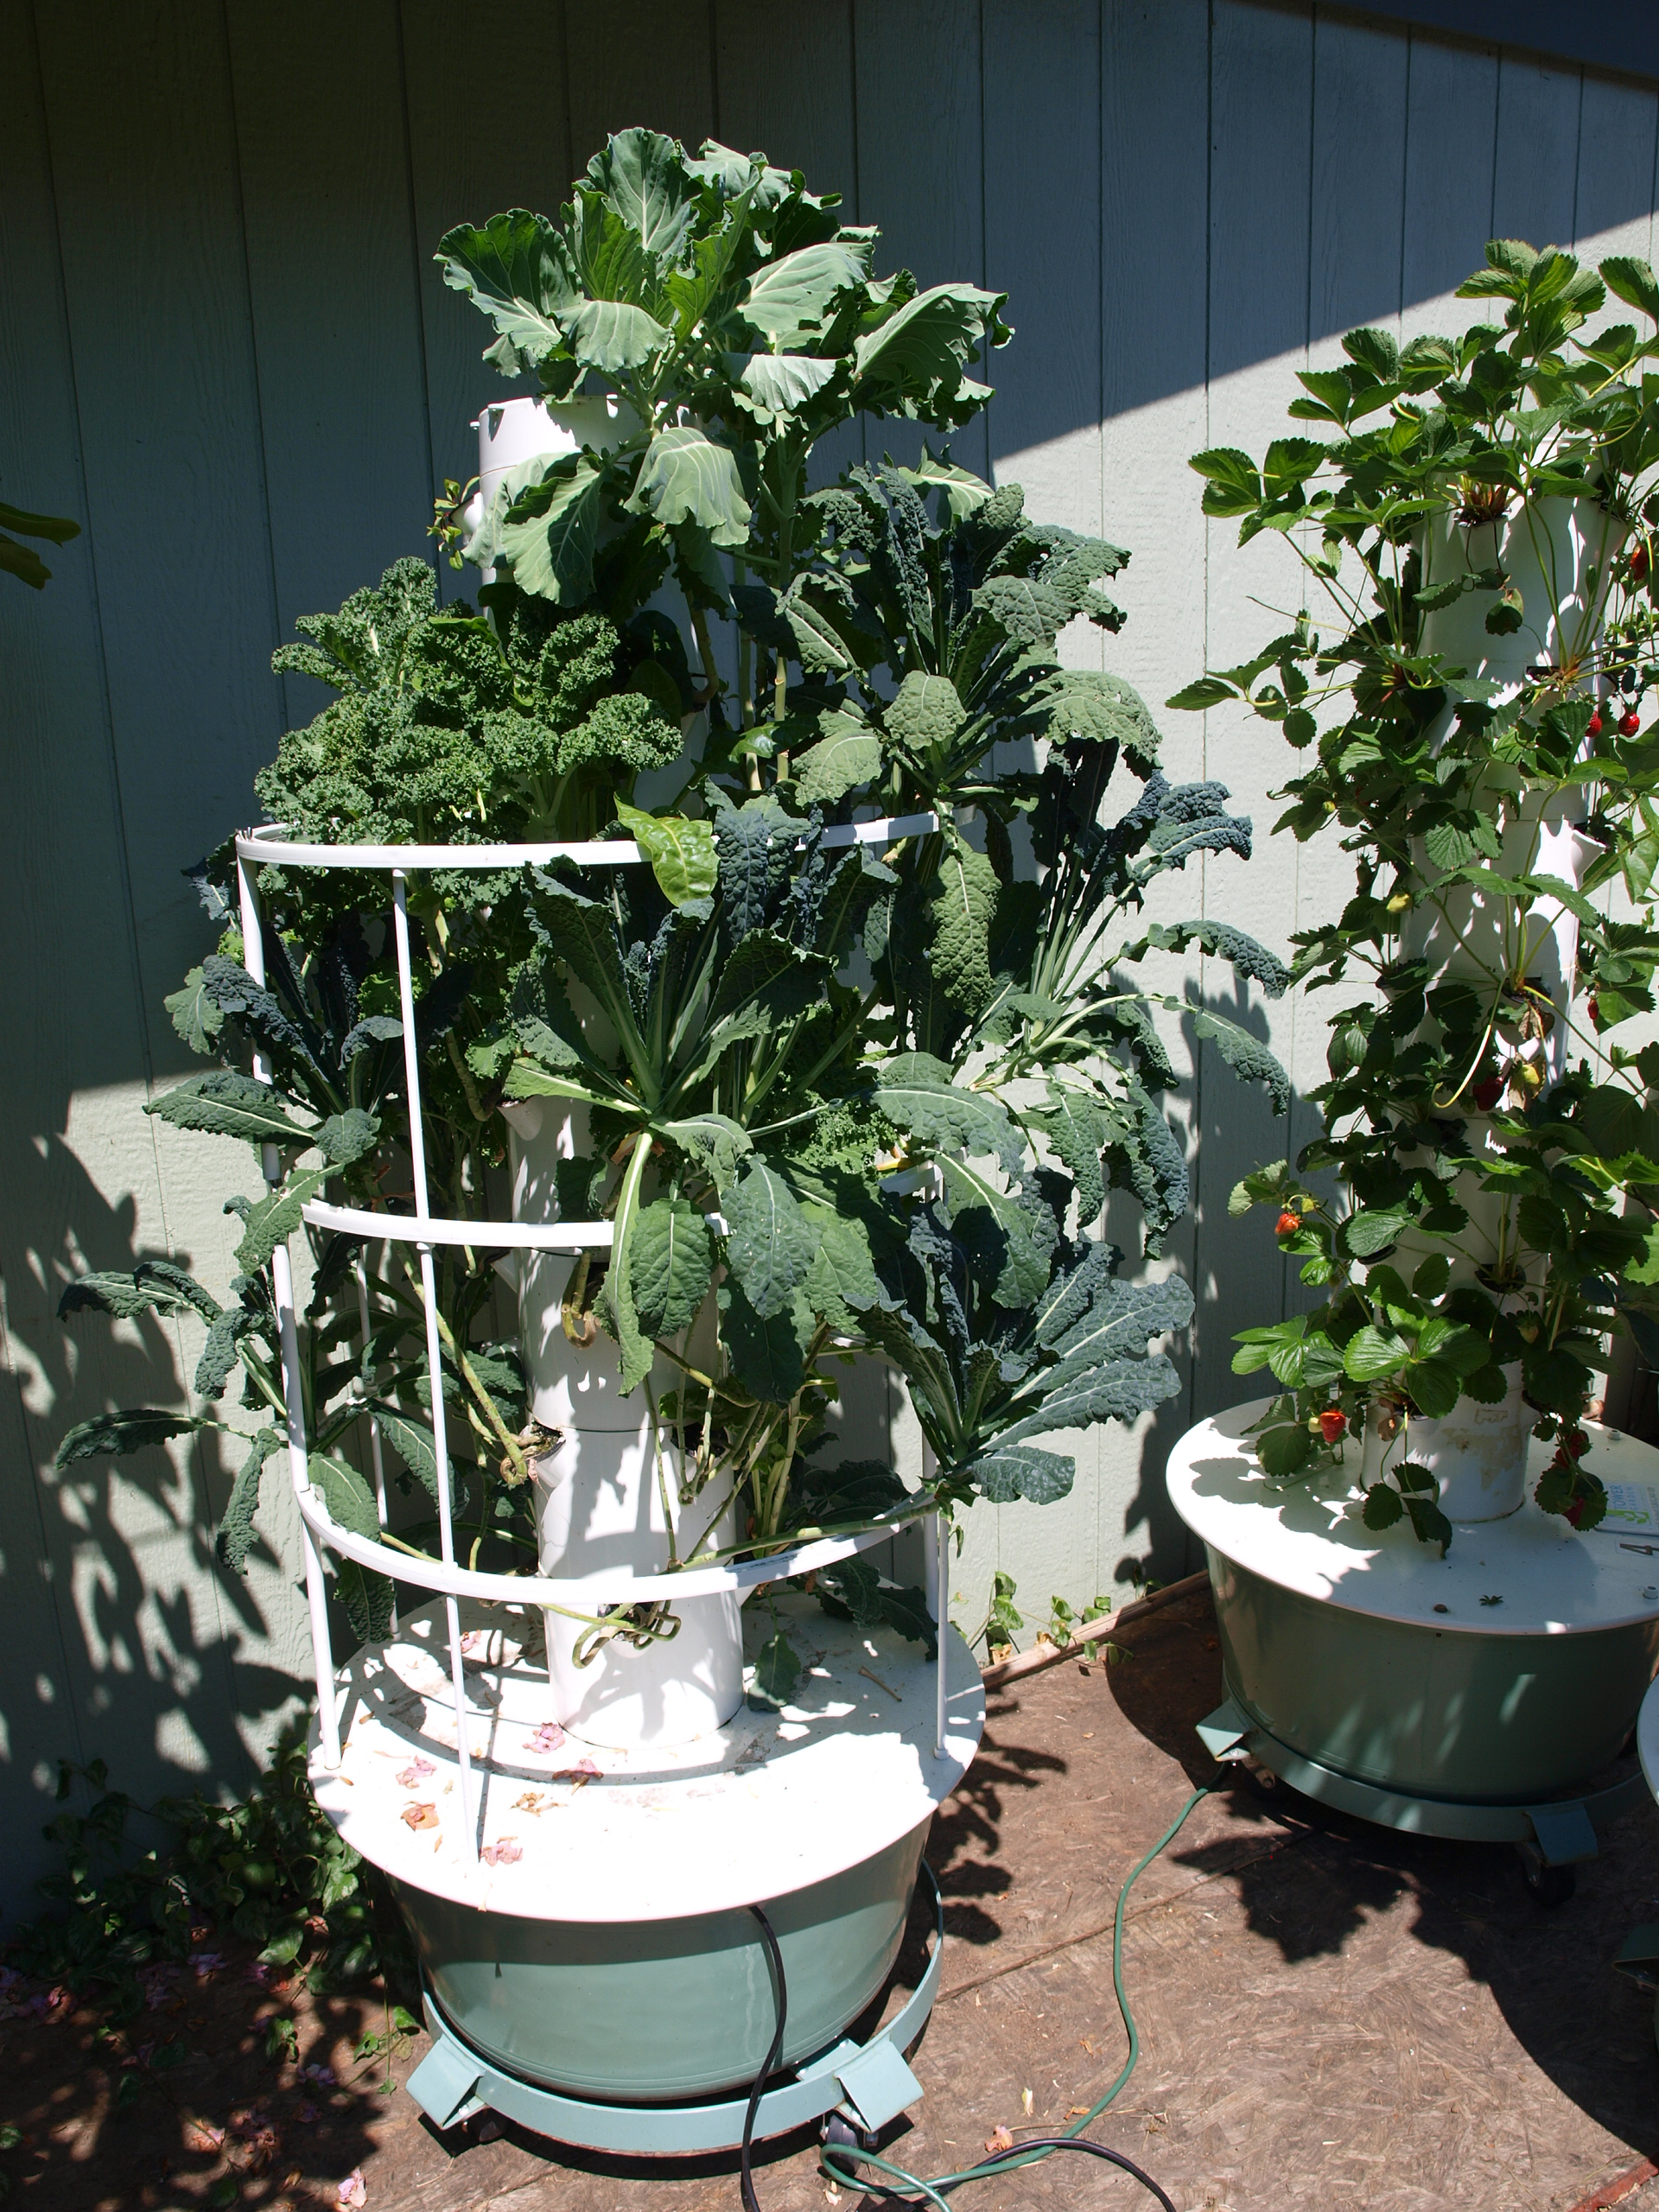 Photo of Tower Garden with long stem chard and kale plants